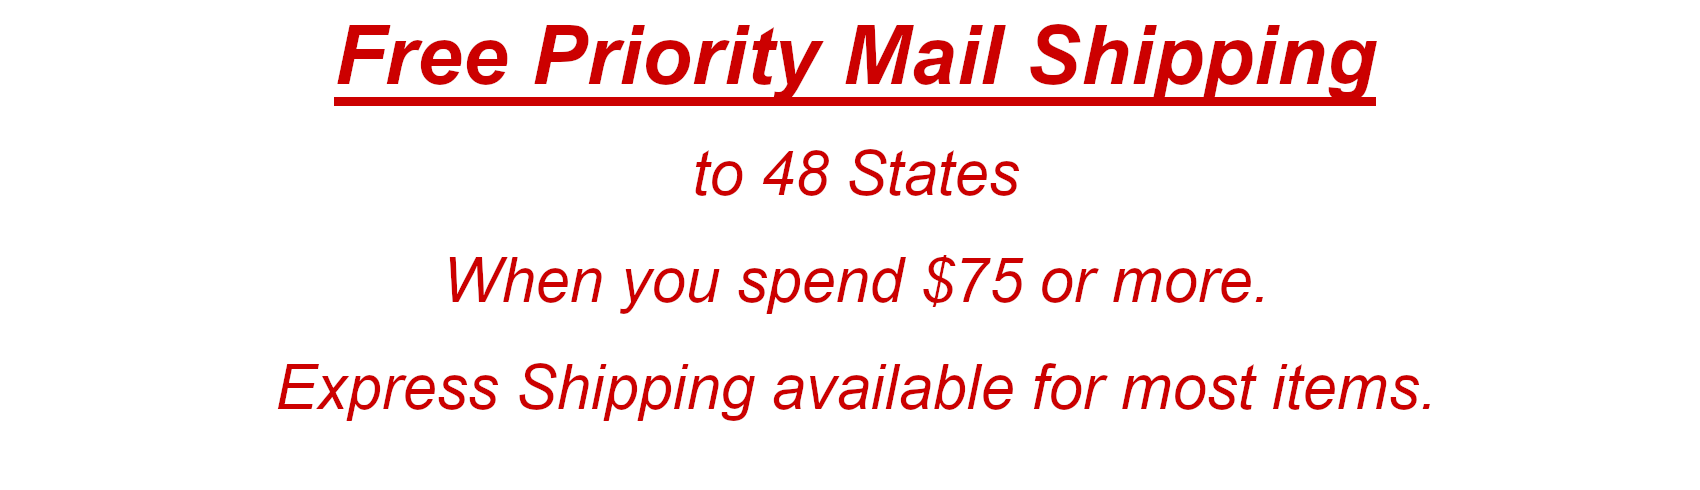 Free Priority Mail Shipping